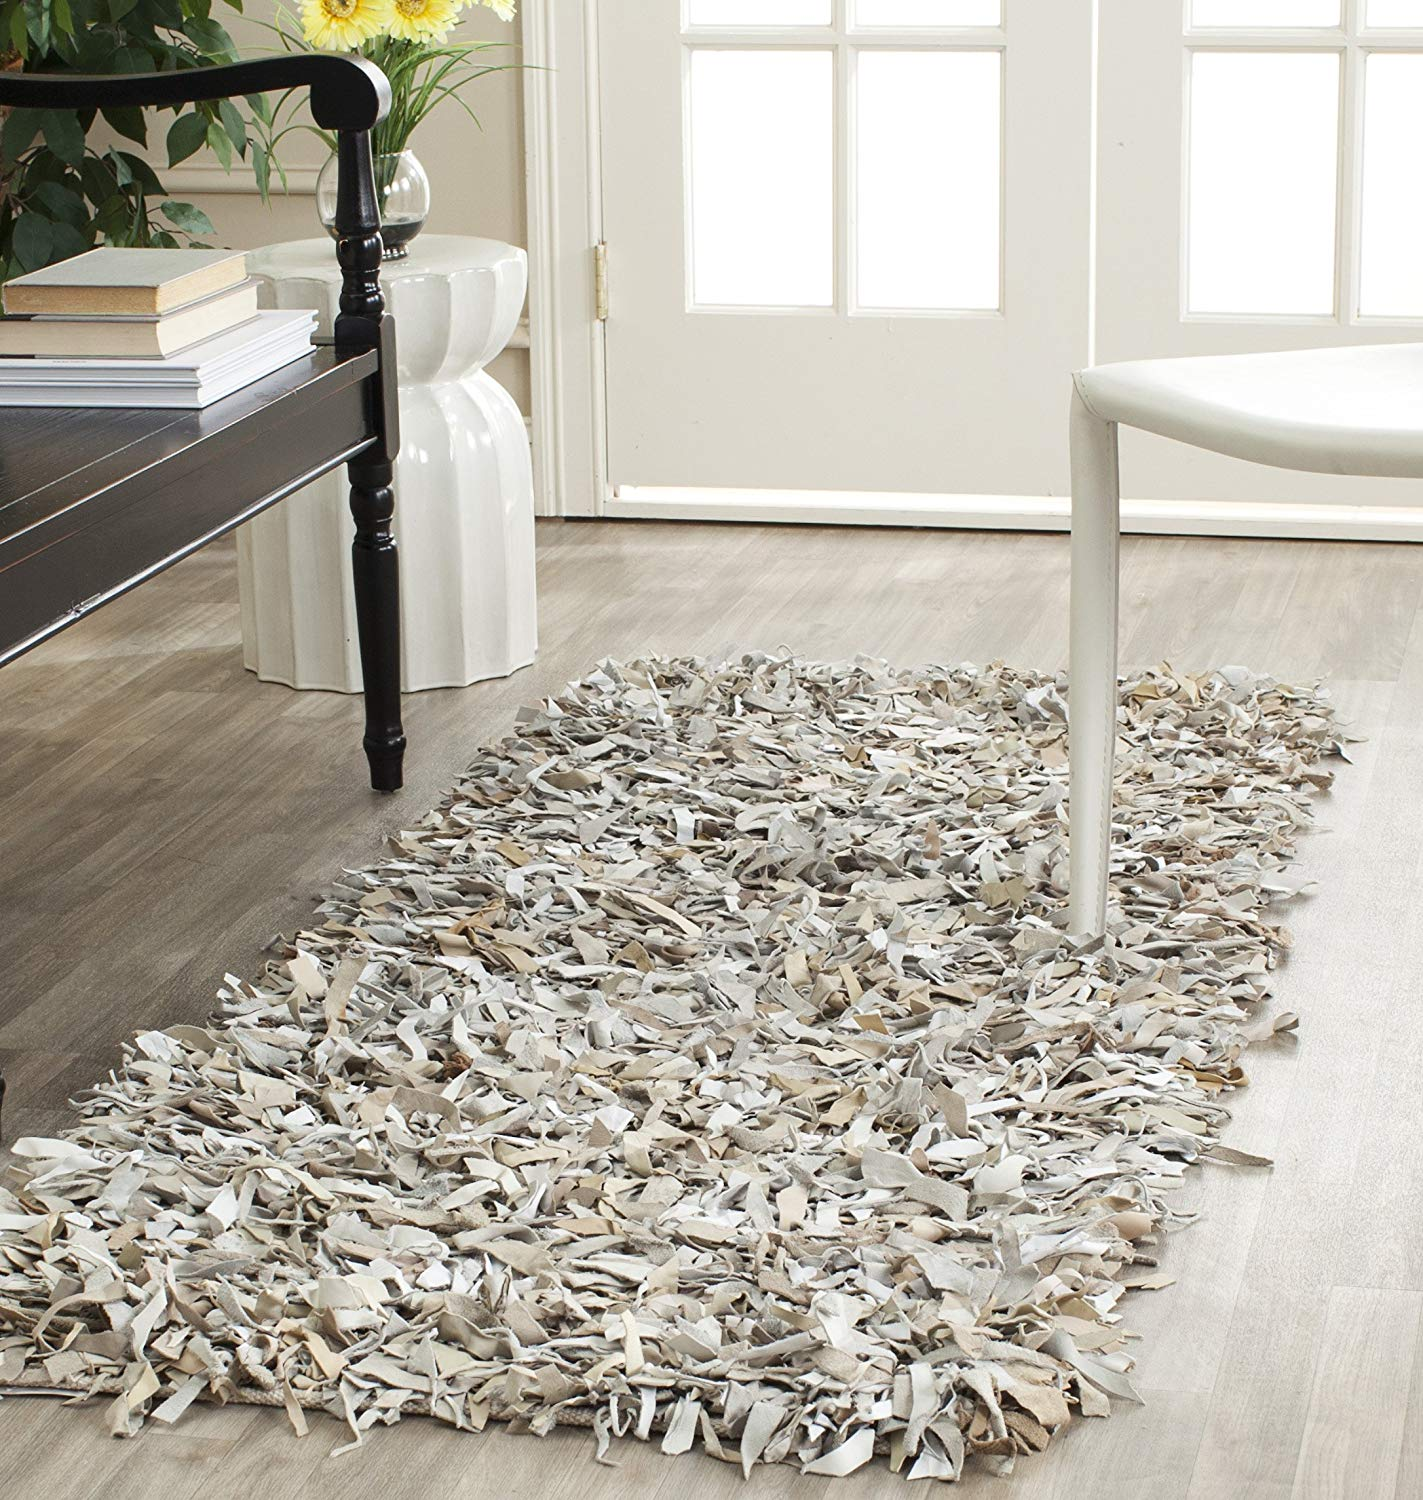 Leather shag rugs amazon.com: safavieh leather shag collection lsg511c hand woven white  leather runner (2u00273 CZYSUIY